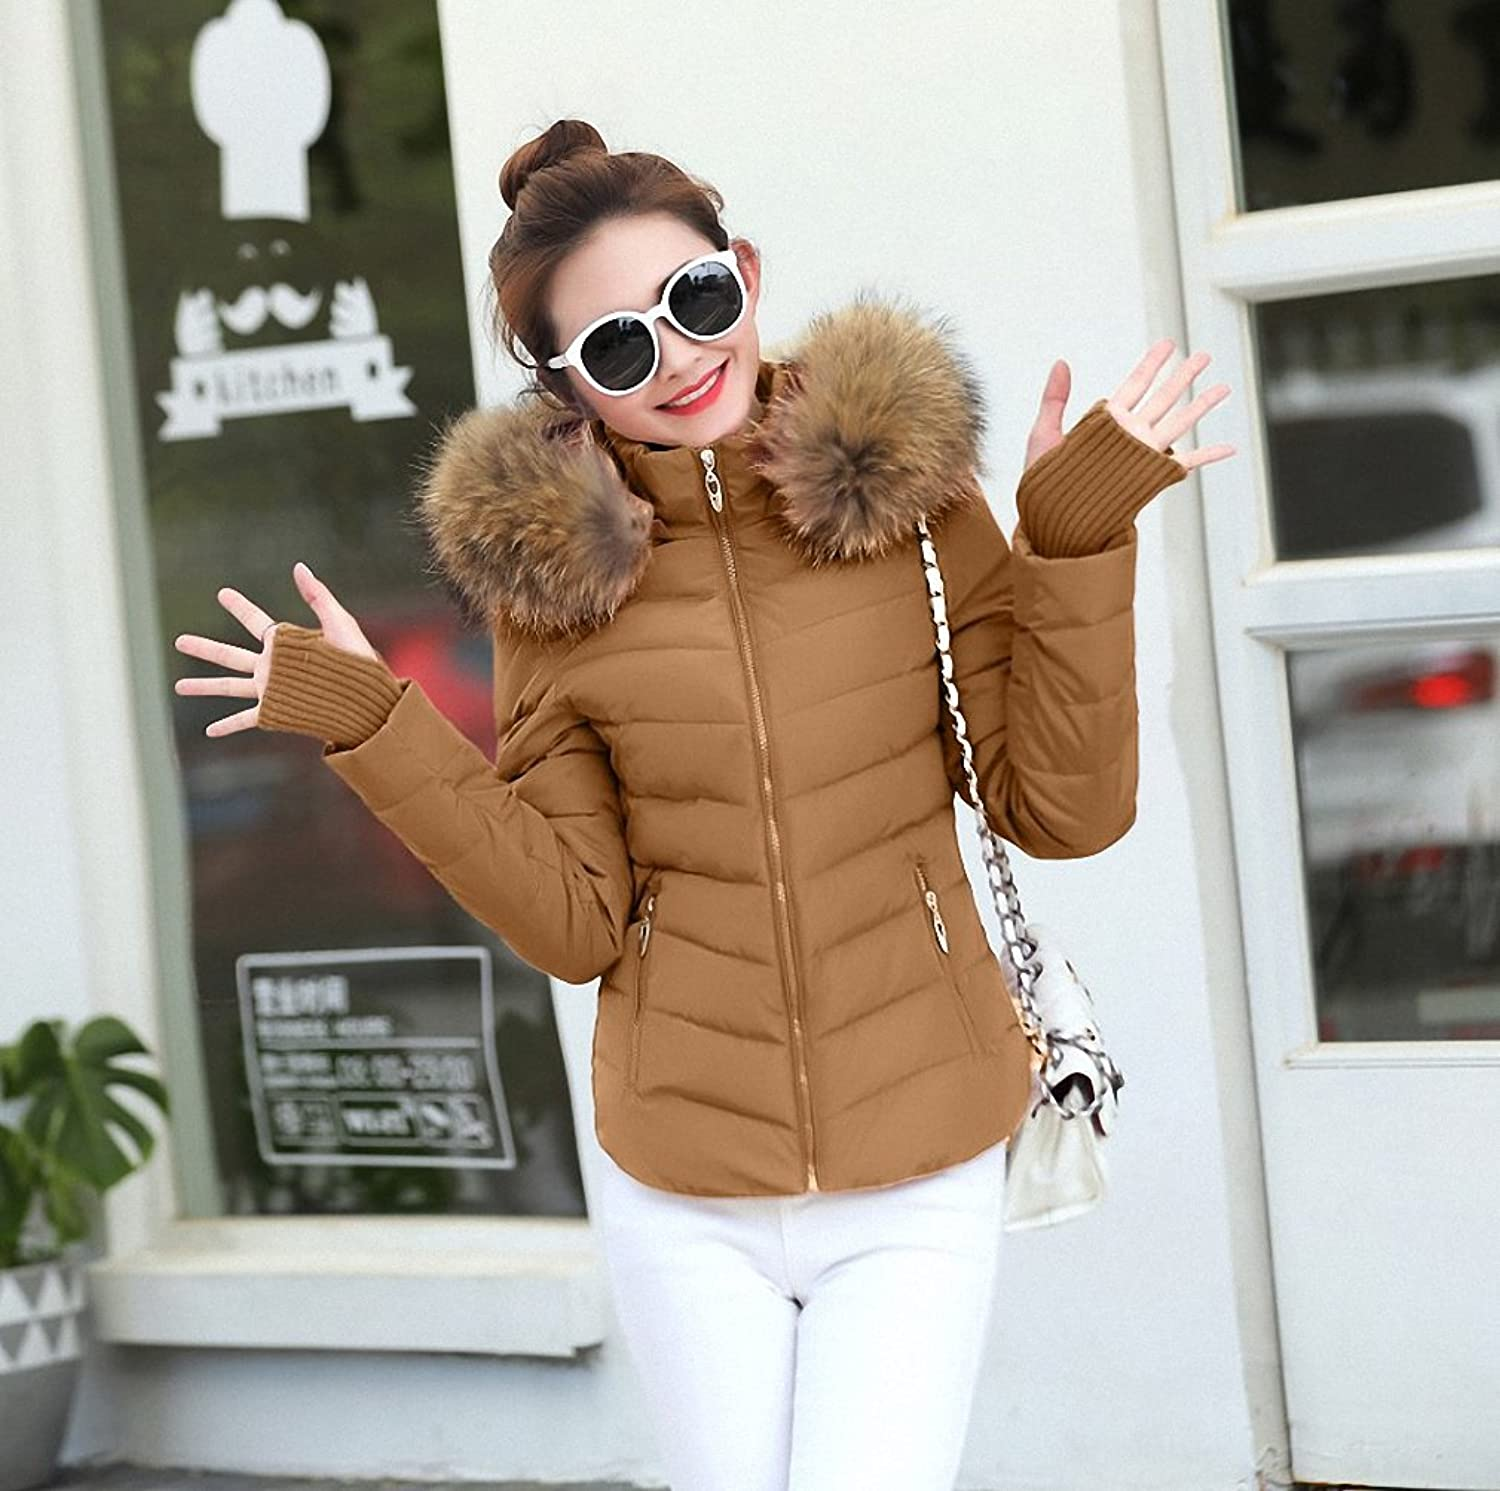 Womens Parka Autumn Winter Jacket Parkas For Coat Female Down Jacket With Hood 100% True Raccoon Collar Plus Size